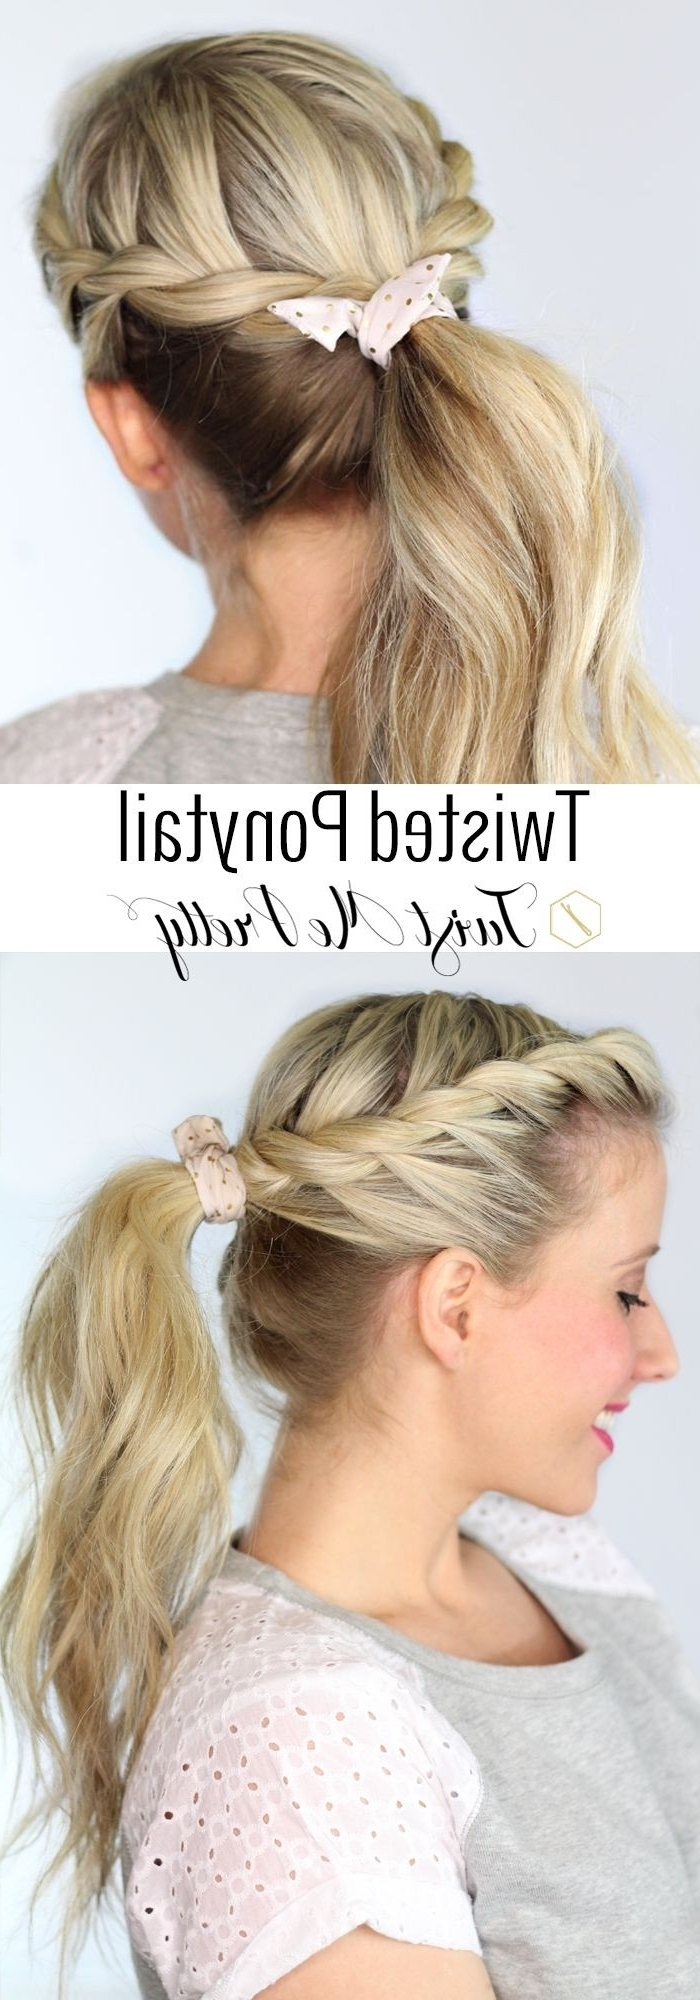 Styles Weekly For 2017 Bouffant And Braid Ponytail Hairstyles (View 18 of 20)